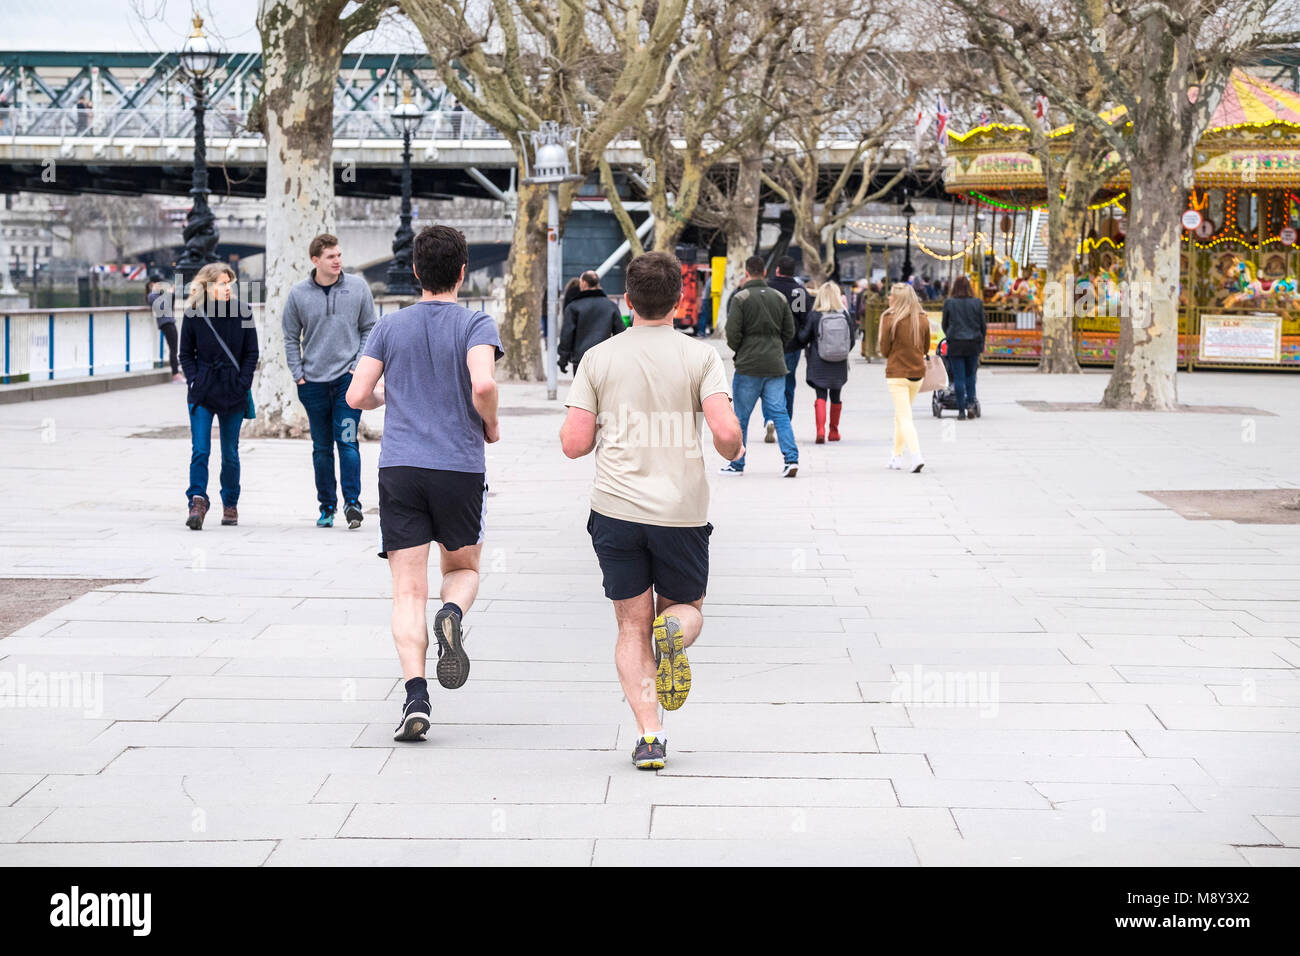 Two runners on the Southbank in London. - Stock Image